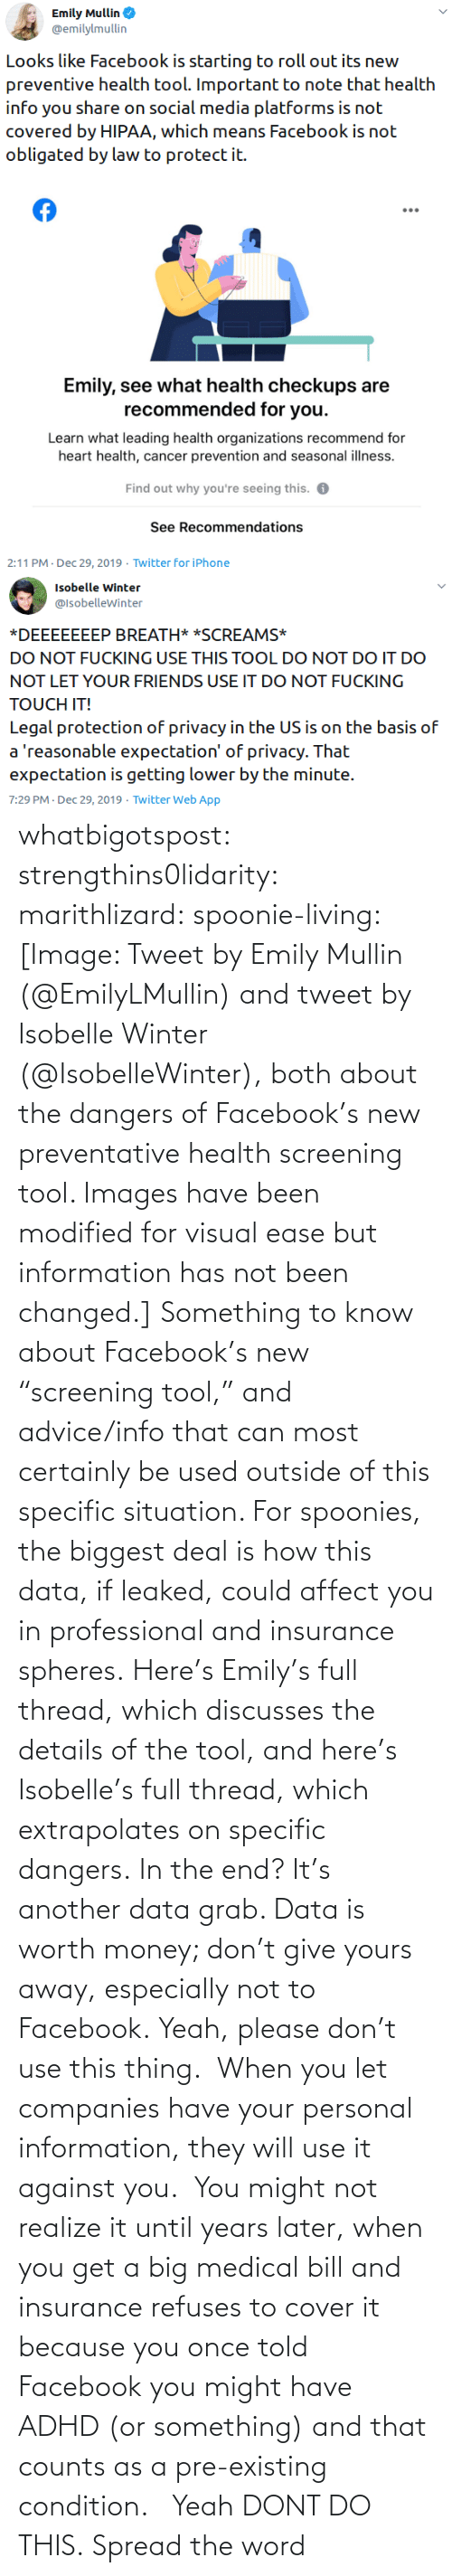 """companies: whatbigotspost: strengthins0lidarity:  marithlizard:  spoonie-living:  [Image: Tweet by Emily Mullin (@EmilyLMullin) and tweet by Isobelle Winter (@IsobelleWinter), both about the dangers of Facebook's new preventative health screening tool. Images have been modified for visual ease but information has not been changed.] Something to know about Facebook's new """"screening tool,"""" and advice/info that can most certainly be used outside of this specific situation.  For spoonies, the biggest deal is how this data, if leaked, could affect you in professional and insurance spheres. Here's Emily's full thread, which discusses the details of the tool, and here's Isobelle's full thread, which extrapolates on specific dangers. In the end? It's another data grab. Data is worth money; don't give yours away, especially not to Facebook.  Yeah, please don't use this thing. When you let companies have your personal information, they will use it against you. You might not realize it until years later, when you get a big medical bill and insurance refuses to cover it because you once told Facebook you might have ADHD (or something) and that counts as a pre-existing condition.    Yeah DONT DO THIS.    Spread the word"""